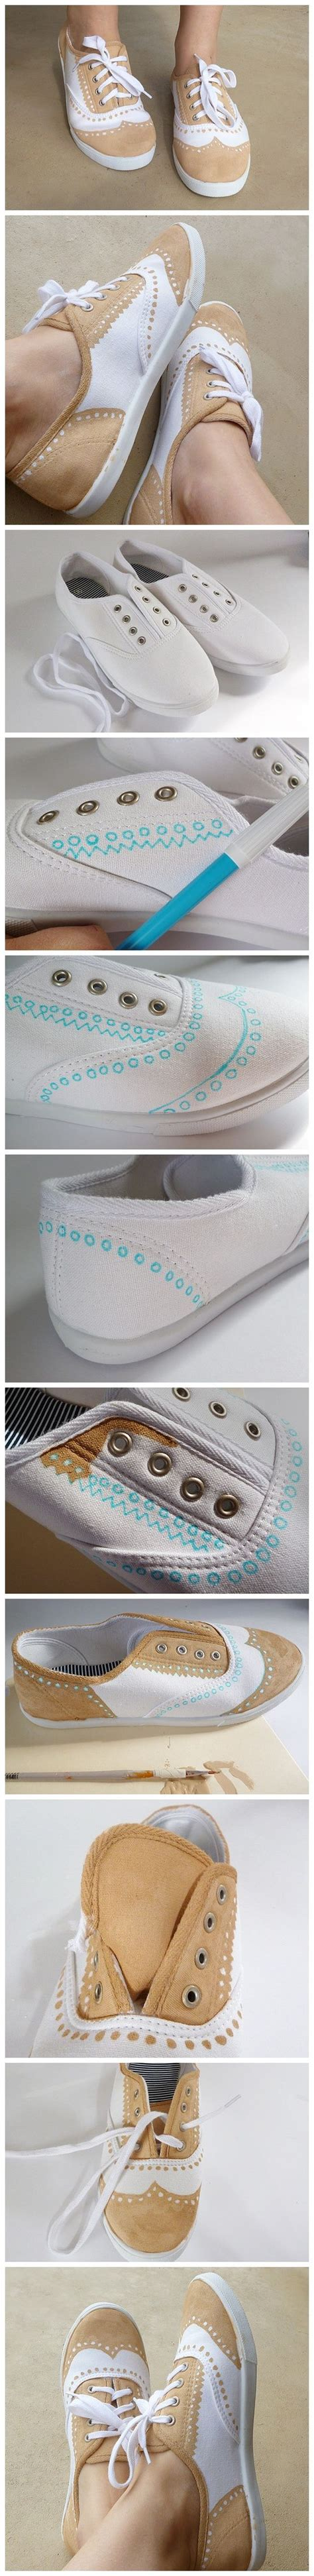 diy saddle shoes oxfords diy diy oxfords shoes and diy and